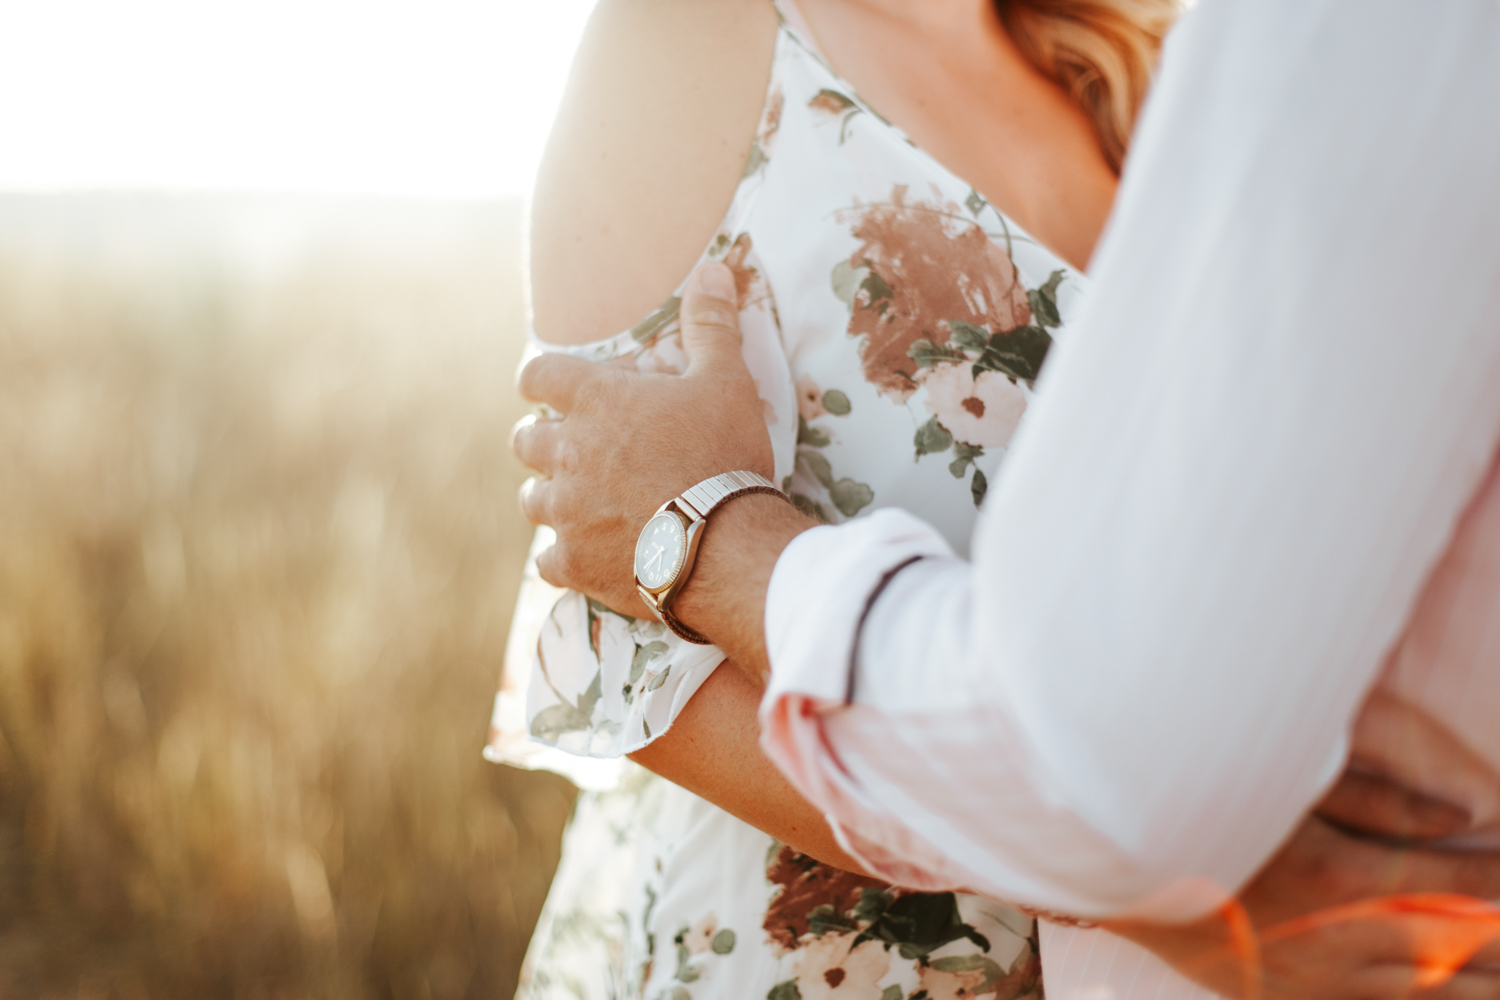 lethbridge-wedding-photographer-love-and-be-loved-photography-katie-kelli-engagement-picture-image-photo-8.jpg